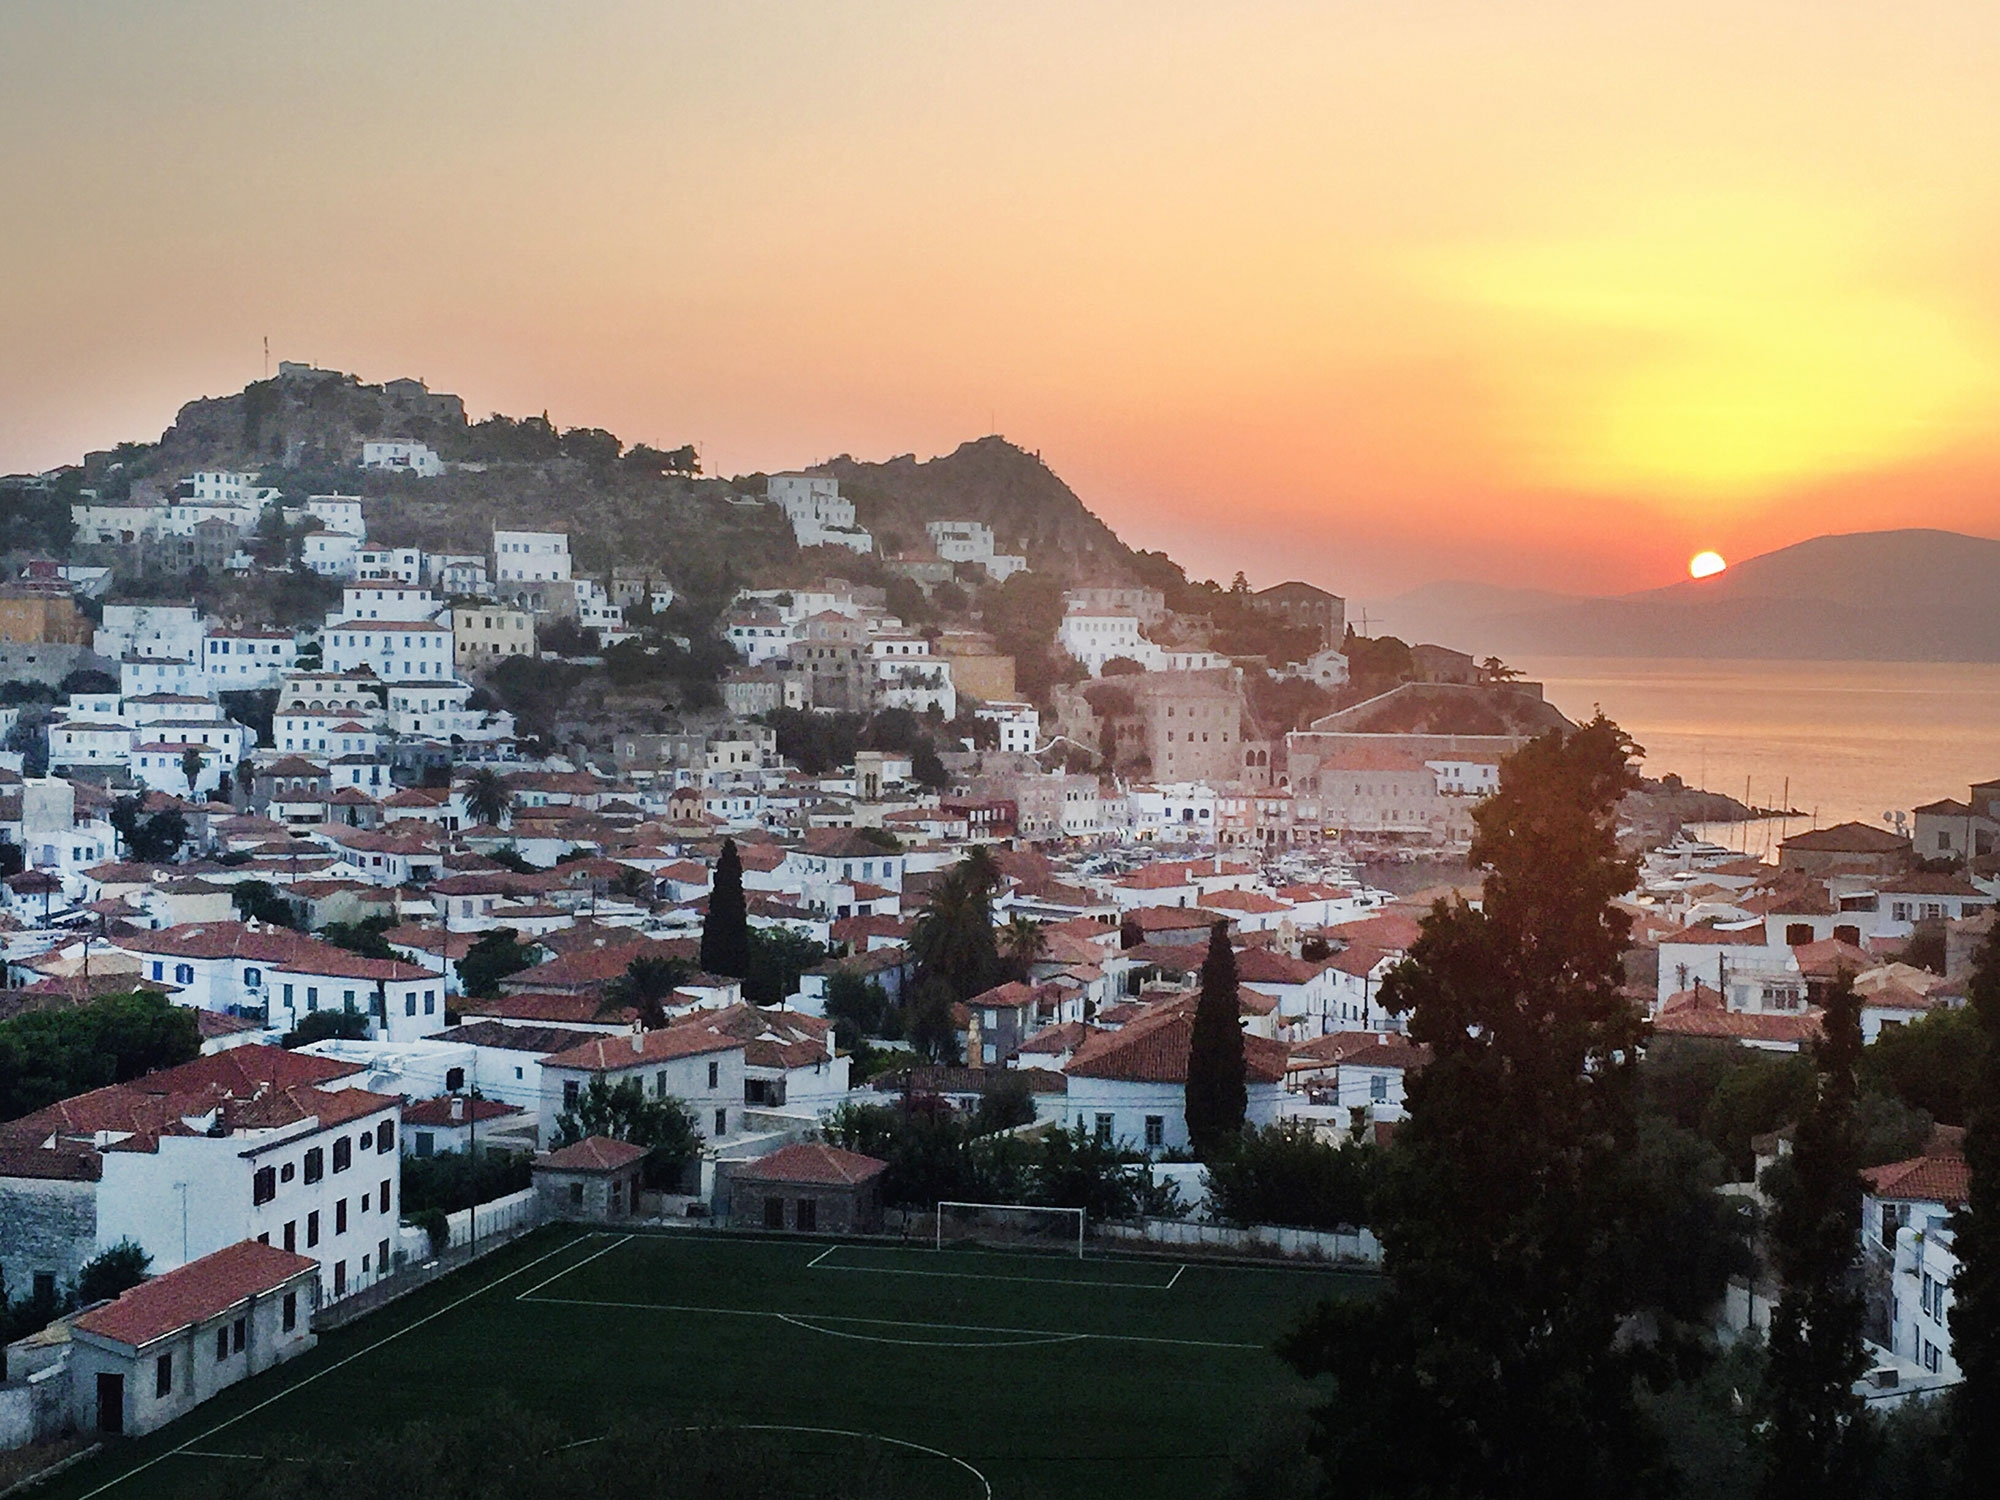 A view of the sunset over a sea of white buildings with terracotta roofs